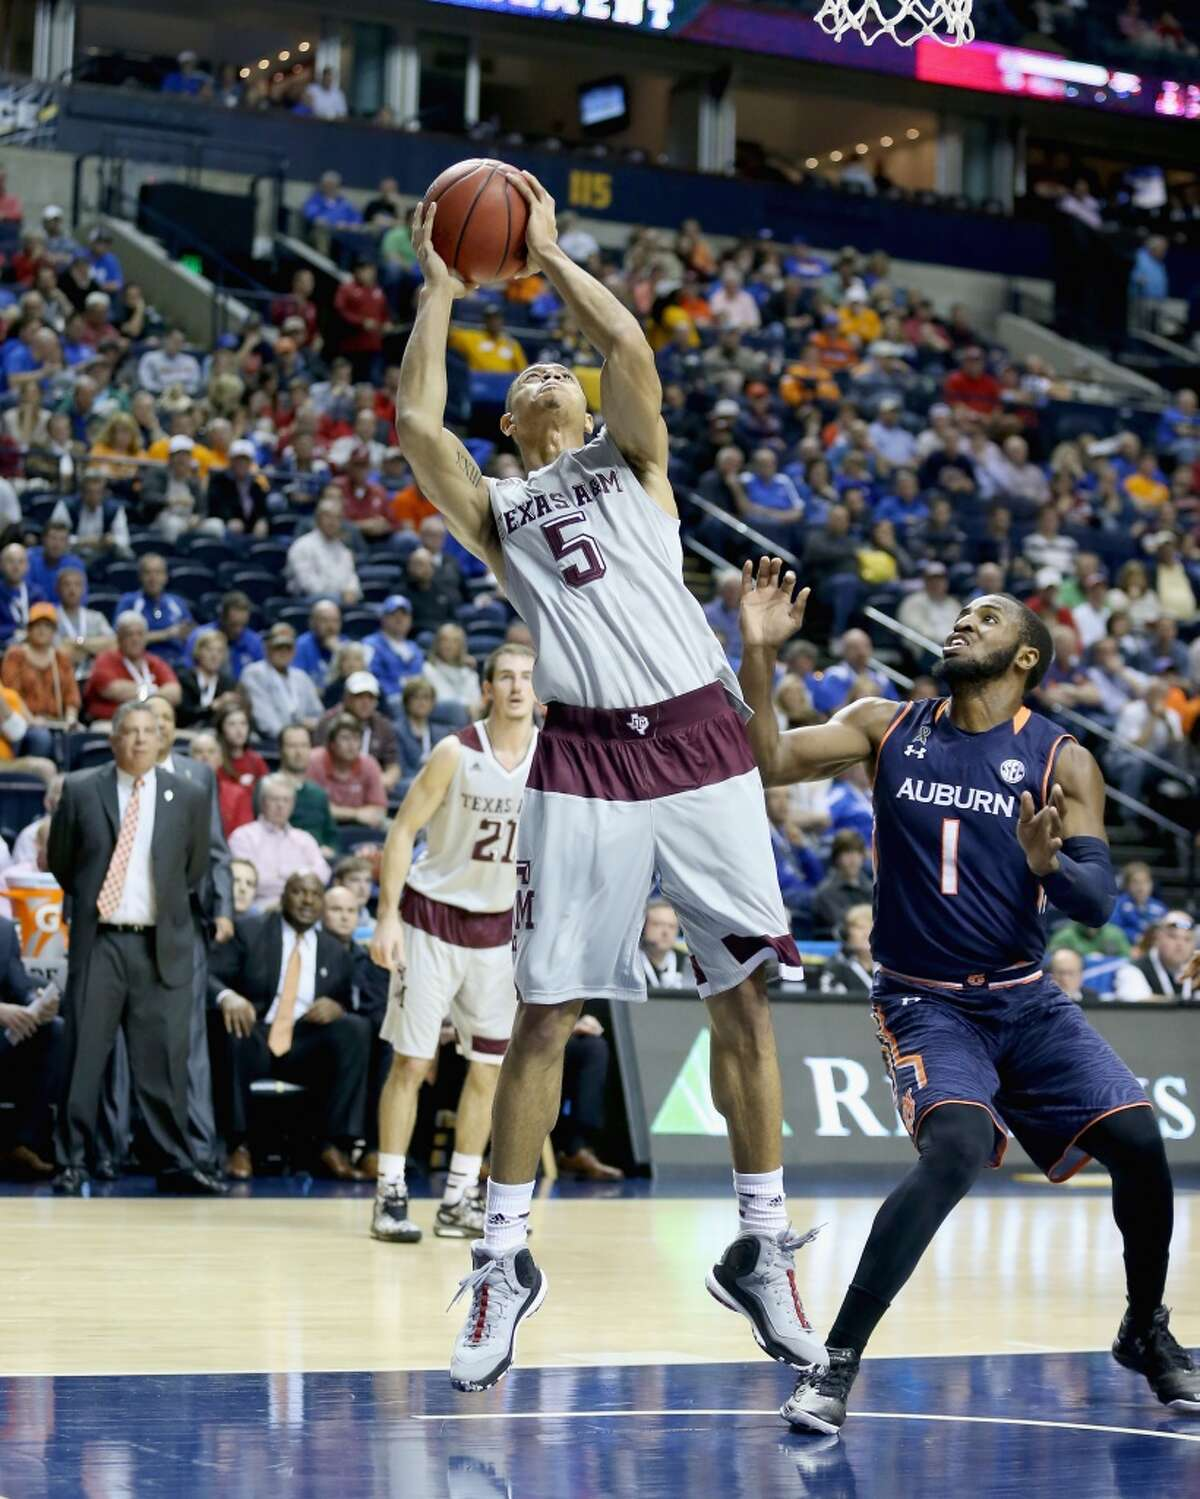 NASHVILLE, TN - MARCH 12: Jordan Green #5 of the Texas A&M Aggies shoots the ball against the Auburn Tigers during the second round game of the SEC Basketball Tournament at Bridgestone Arena on March 12, 2015 in Nashville, Tennessee. (Photo by Andy Lyons/Getty Images)